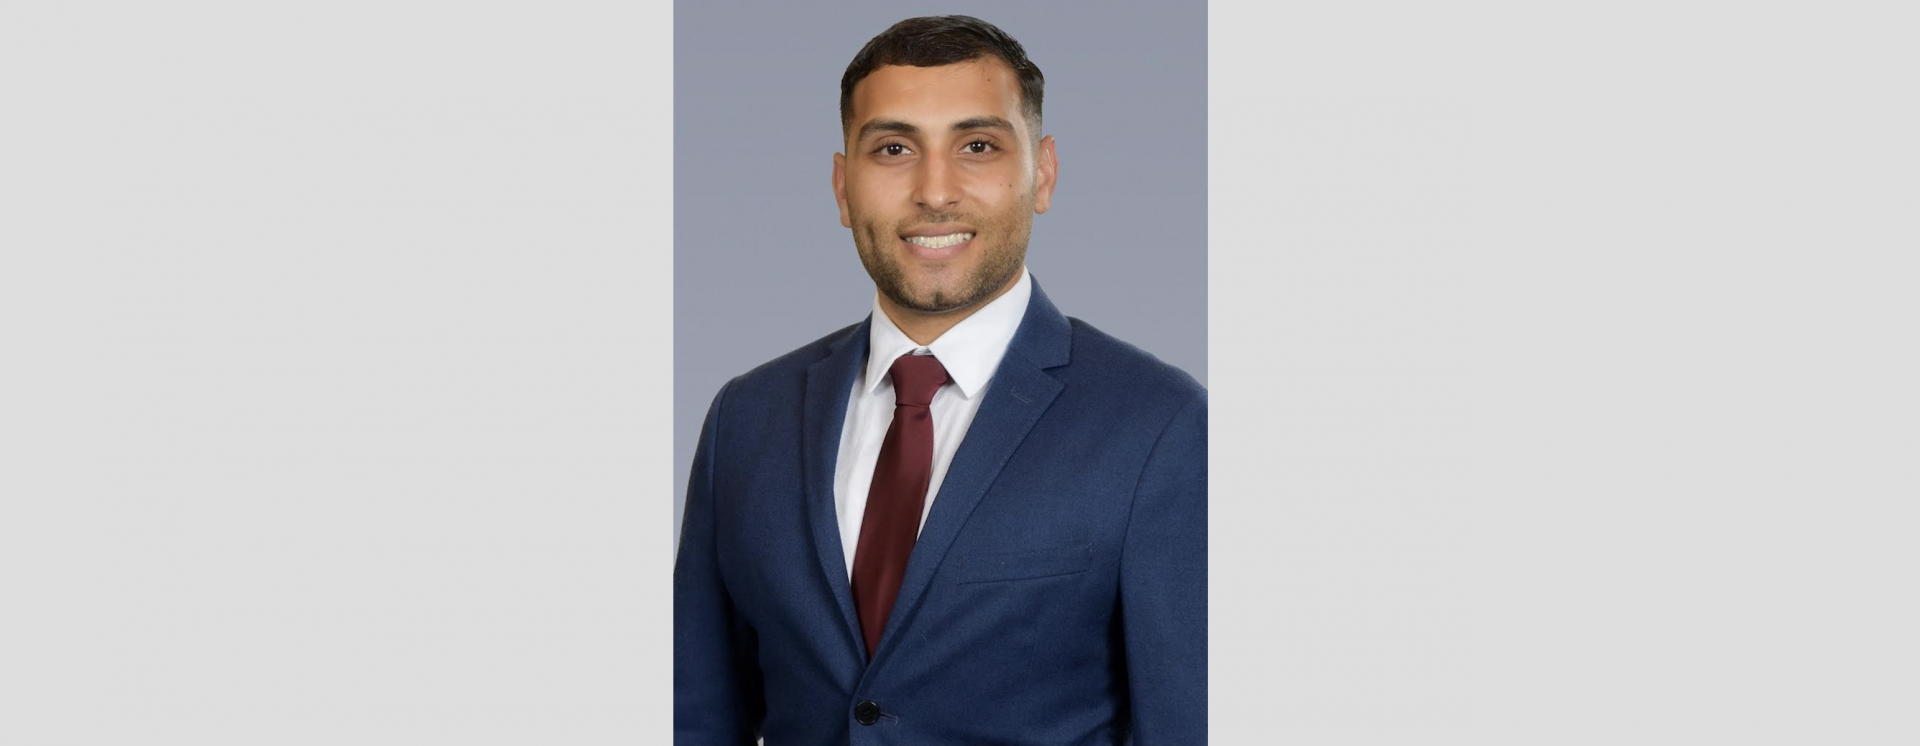 Real Estate Lender Bay Mountain Capital Establishes its Houston Office by Hiring Local Loan Originator Muhammad Sharif